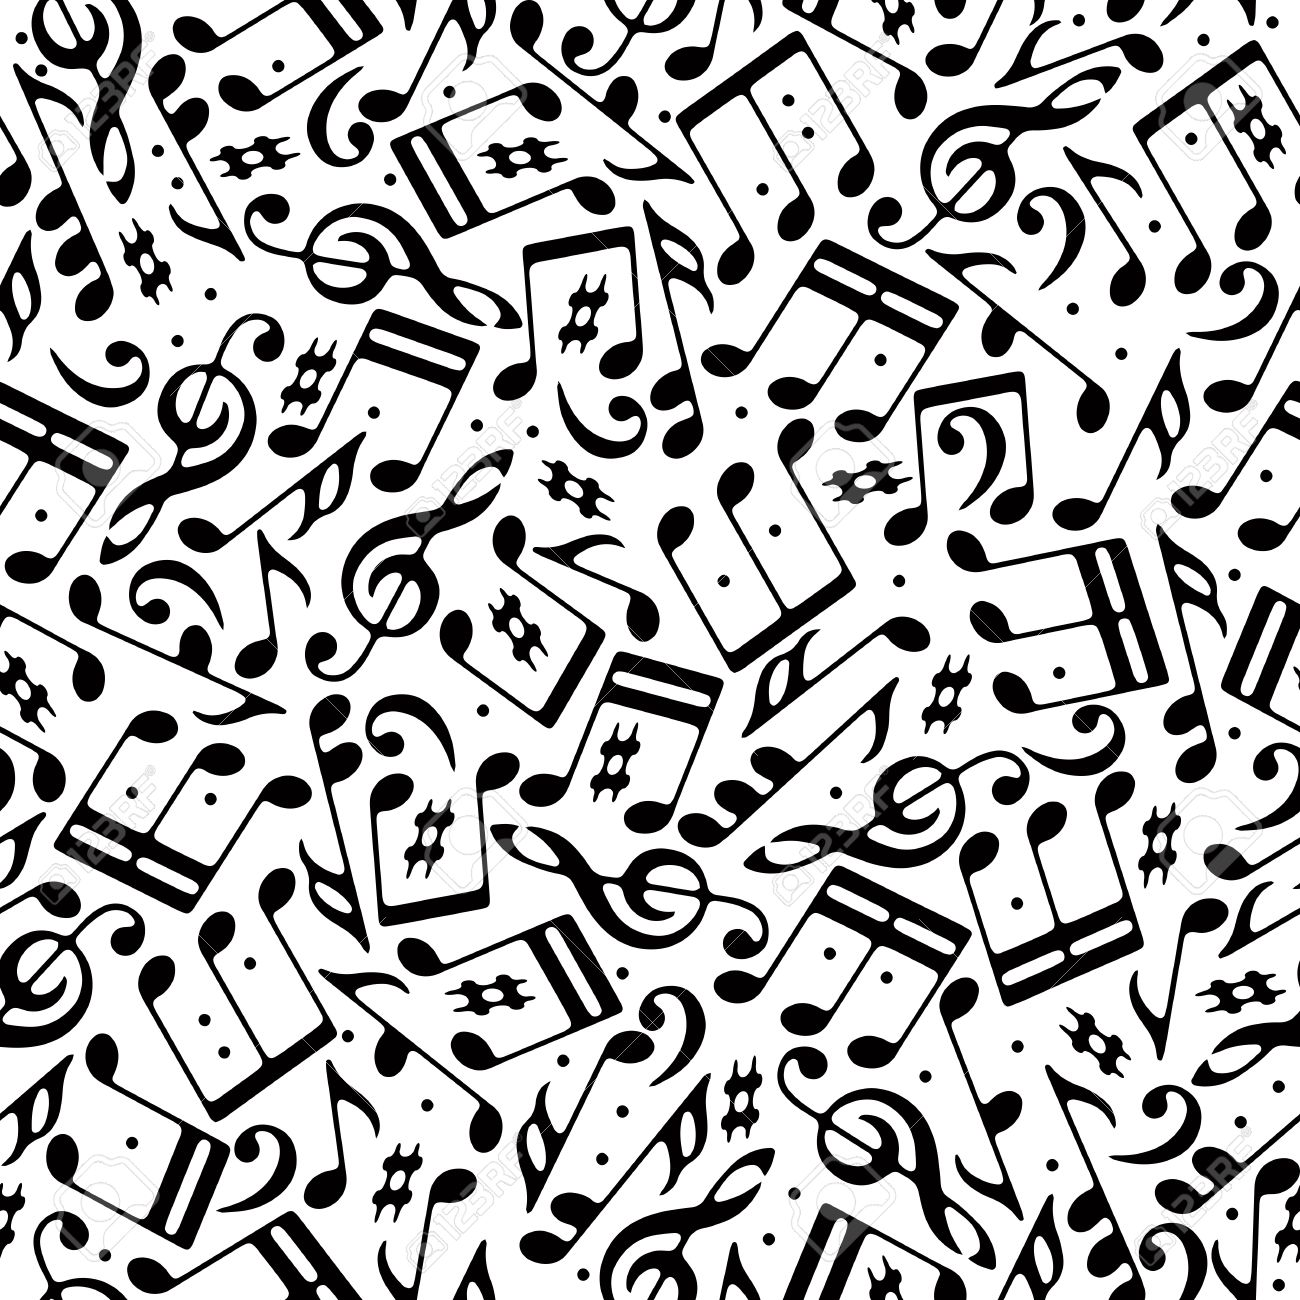 Vector black musical notes and treble clefs seamless pattern on white background. Stock Vector - 33614728